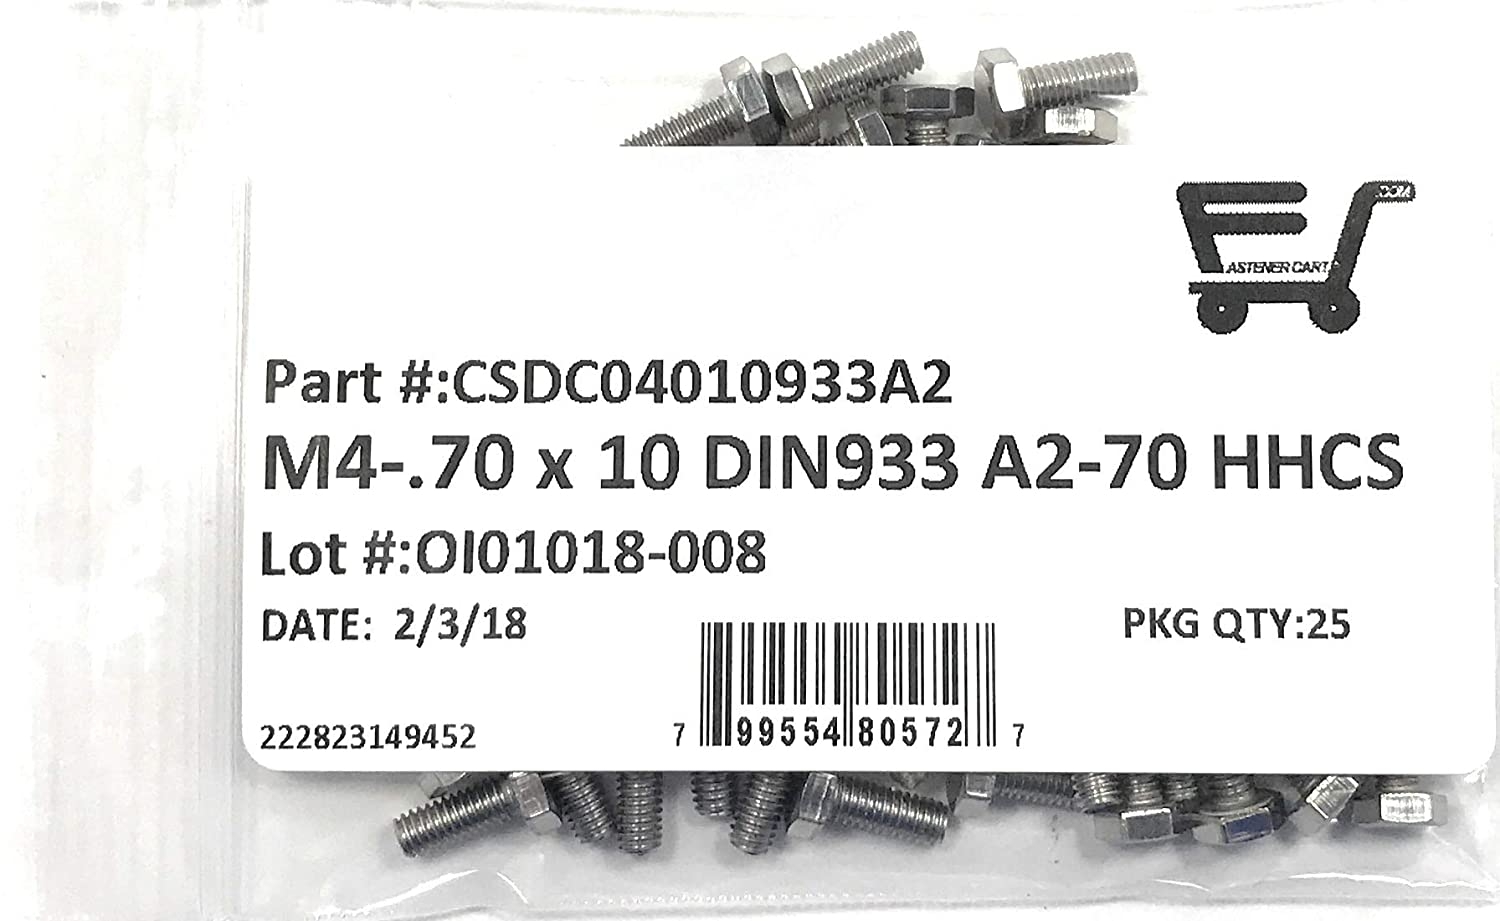 25 Pieces M4x6 Full Thread A2-70 Stainless Steel M4-.70 X 6 Hex Head Cap Screw Hex Bolts DIN933